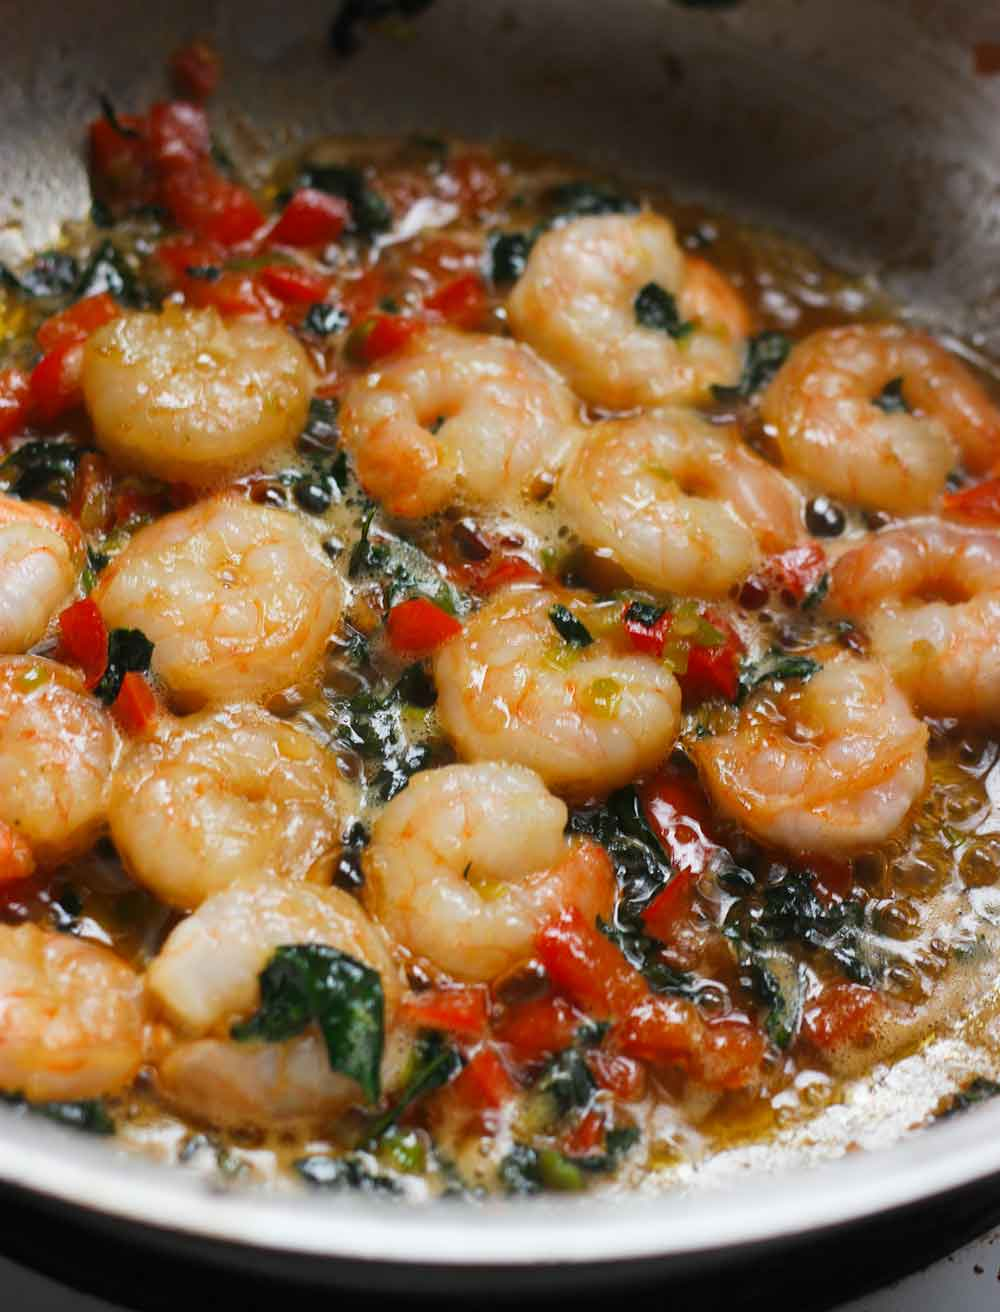 Shrimp and vegetables sauteing in a pan, to be served over spaghetti squash.